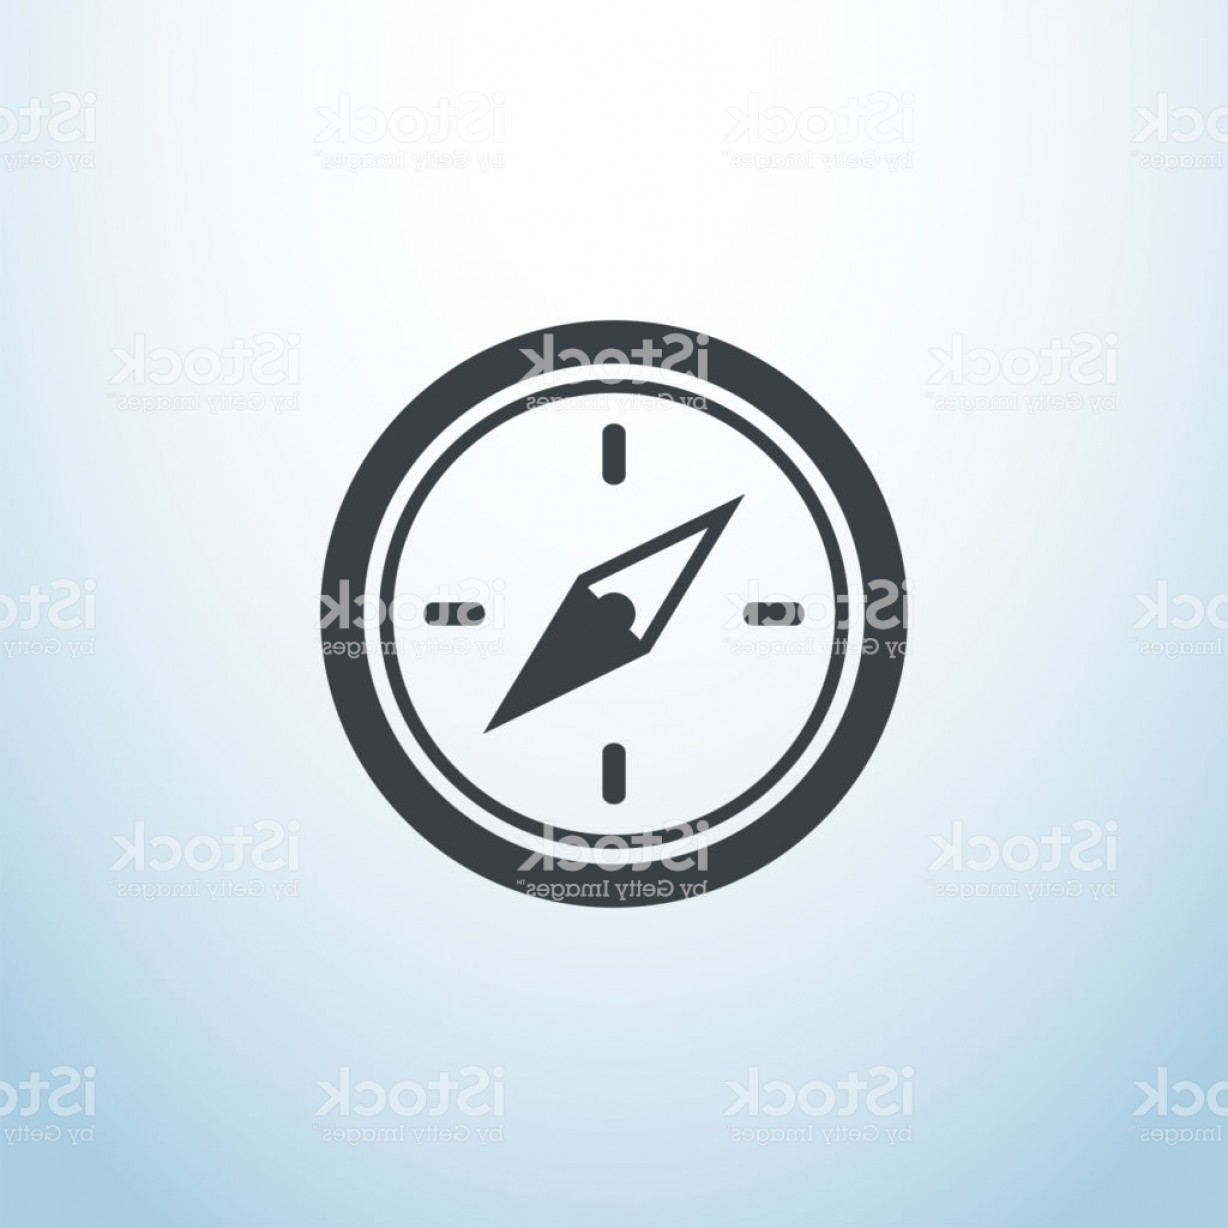 Tumblr Circle Icon Vector: Tumblr Explore Icon Vector Compas Isolated Button Eps Ui Web Symbol Logo Element Gm